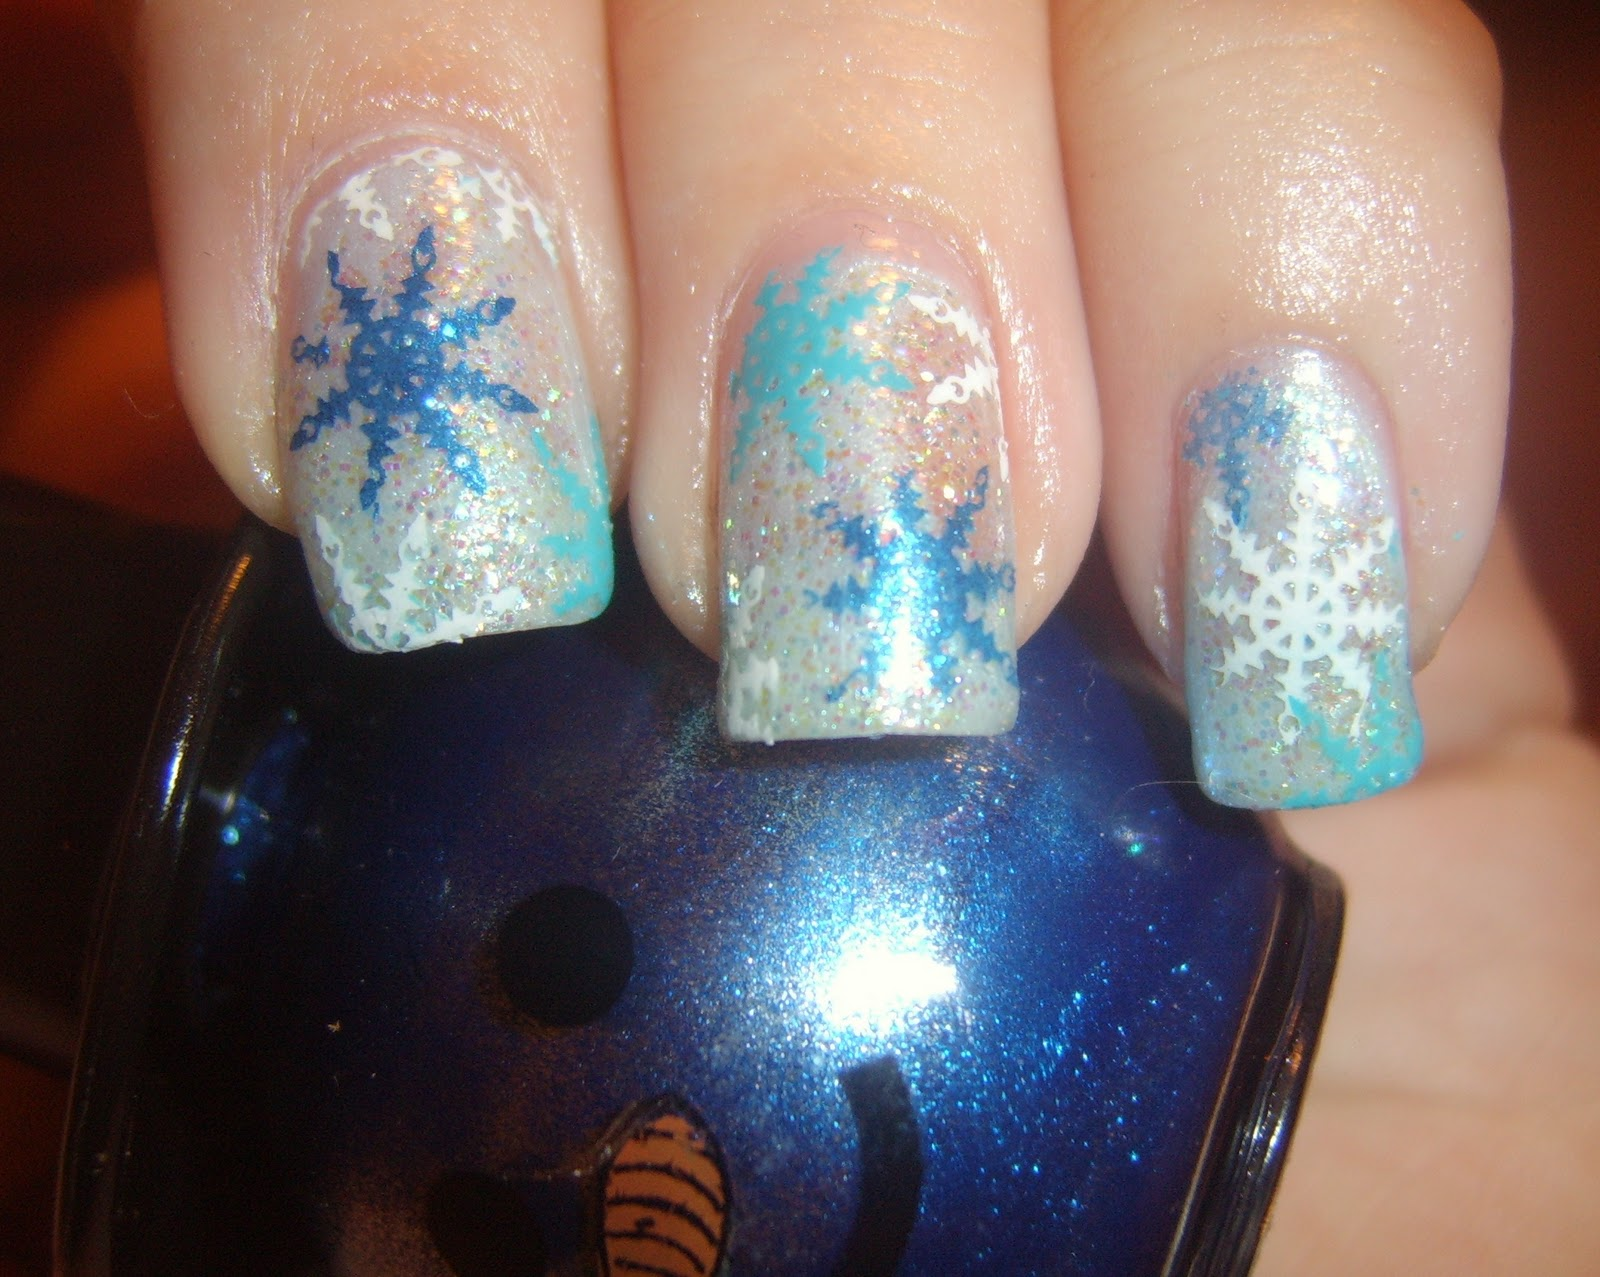 Nails Art: Snowflake nail art design